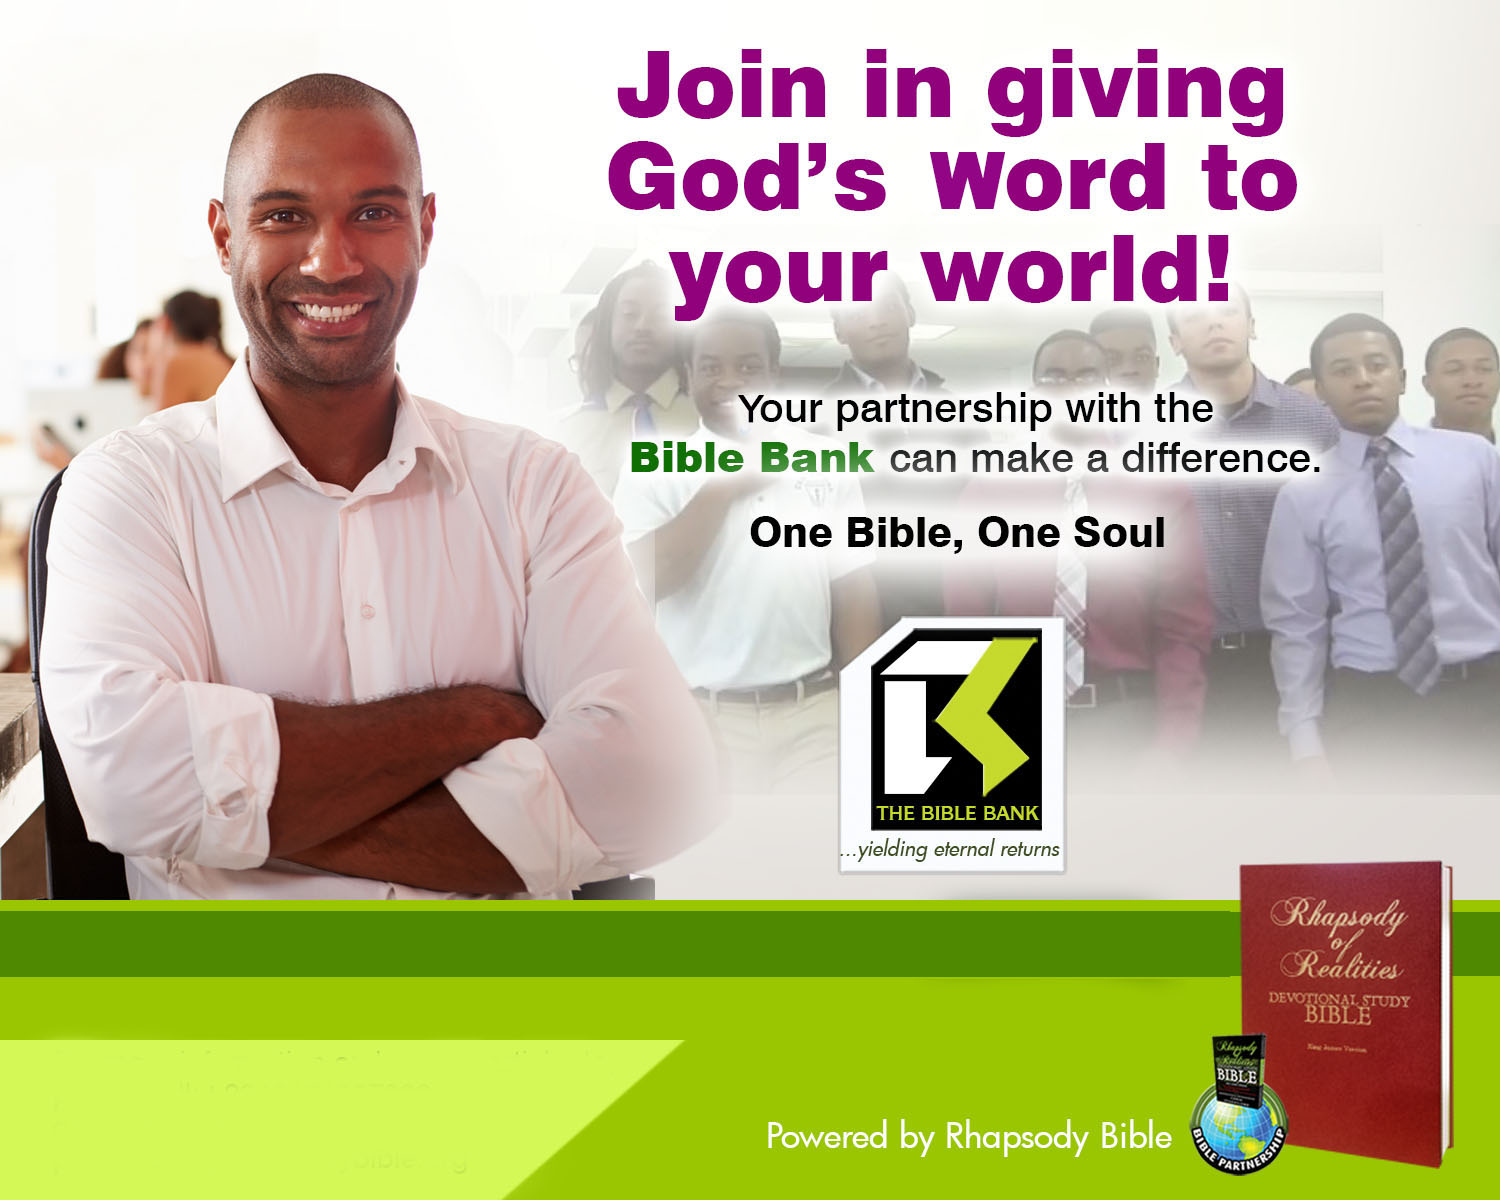 Rhapsody of Realities Bibles